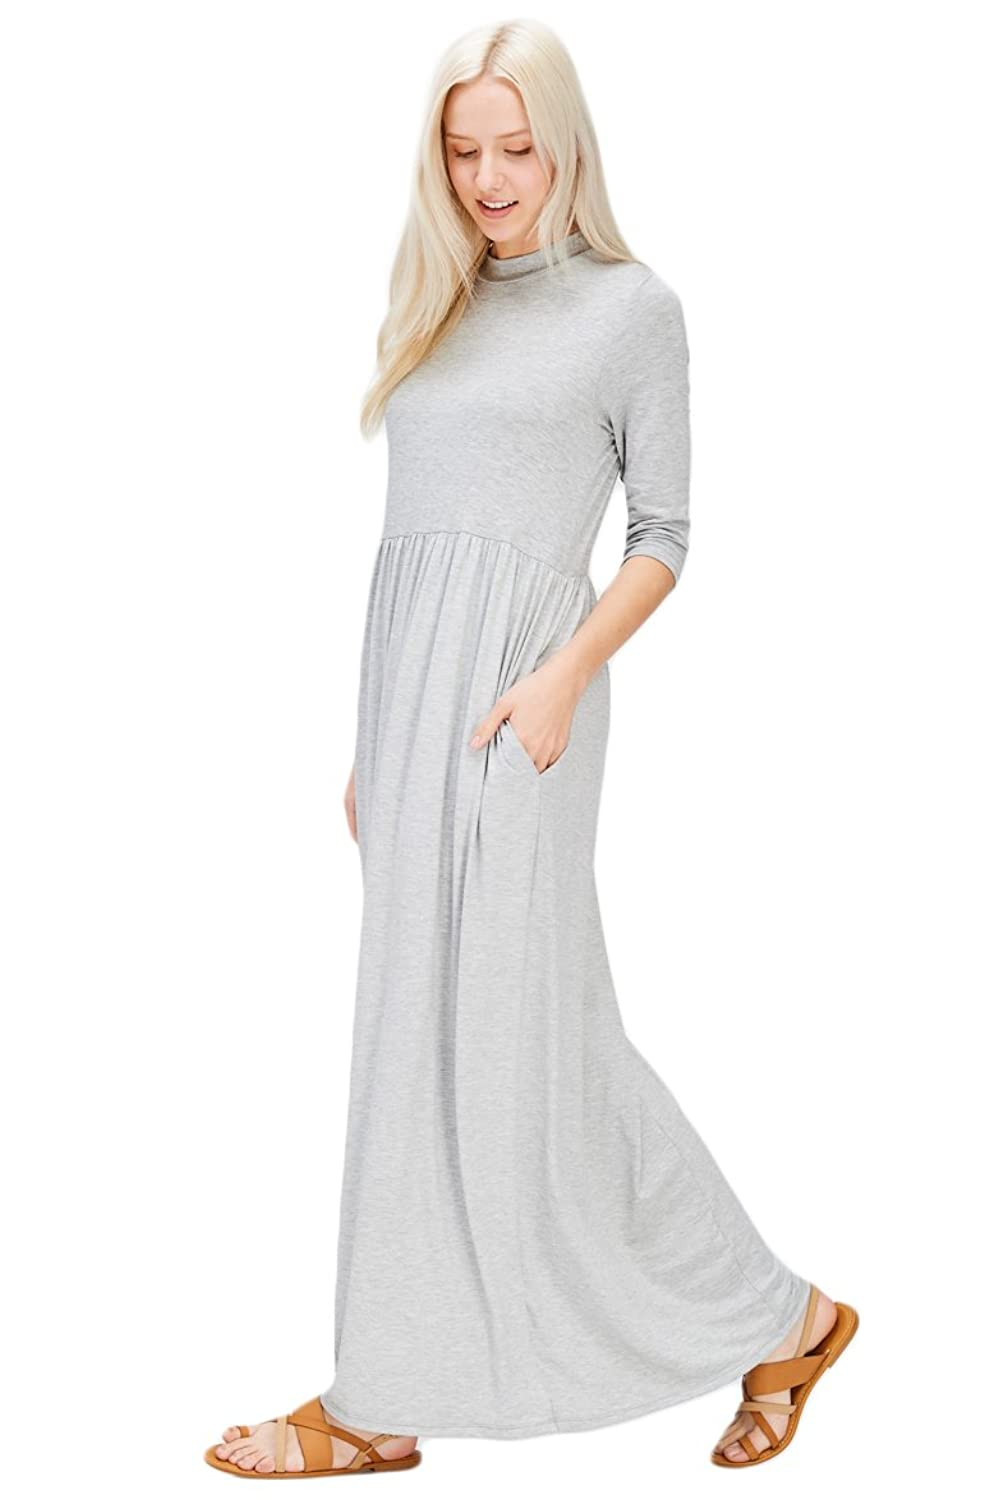 eeb6cf439c Knit Full Length Babydoll Jersey Draped Maxi Dress Featuring Round Neck  with 3 4 Sleeves Comfy Loose Fit with Two Full Size Pockets